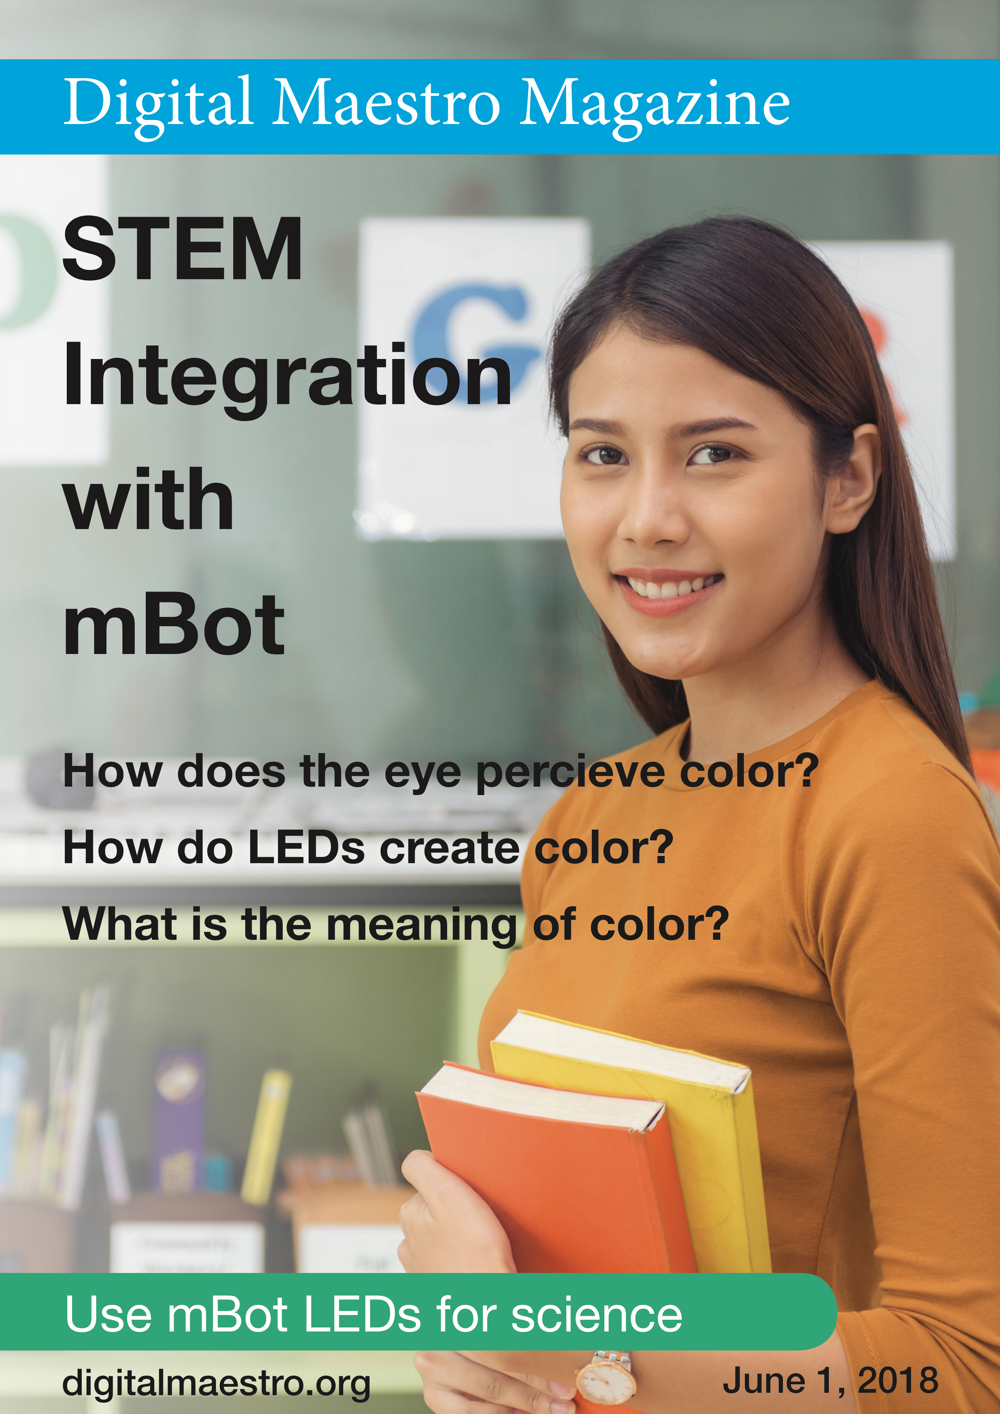 STEM Integration with mBot - Use light to teach how the eye works. The eye collects light from three colors. Understand how LEDs use these colors to create all the colors we see.Download a free sample